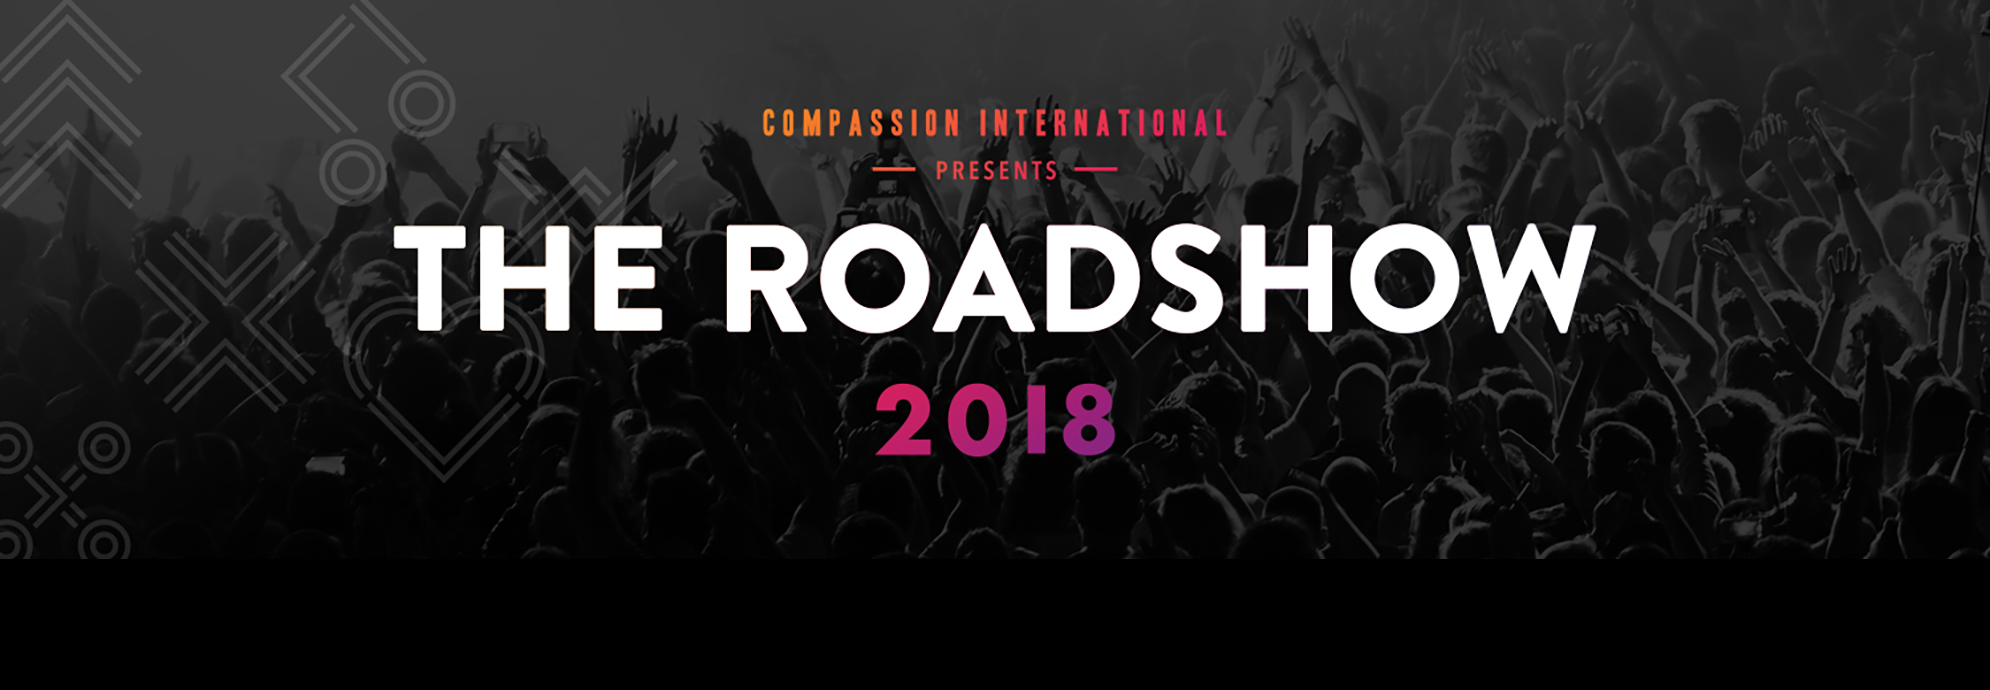 The Roadshow 2018